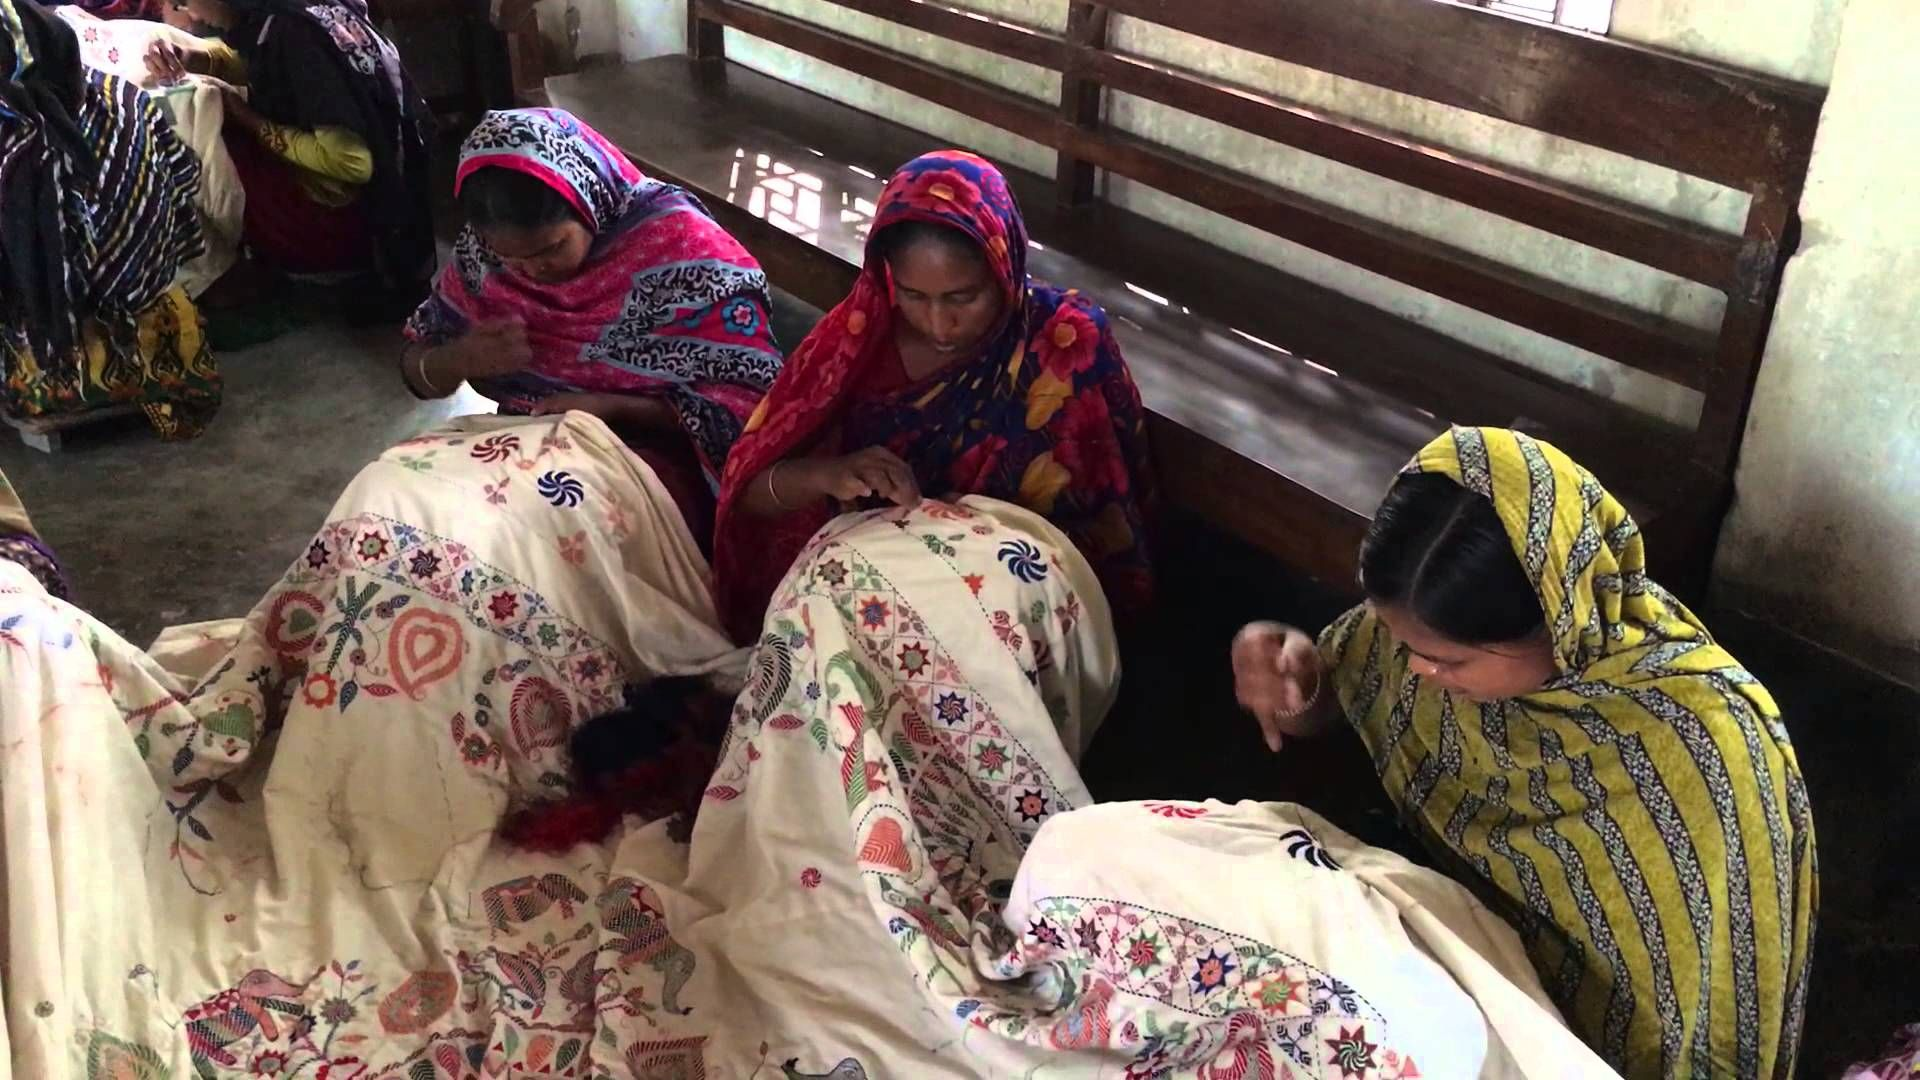 Providing a Workplace for the Rural Women Involved in Crafting